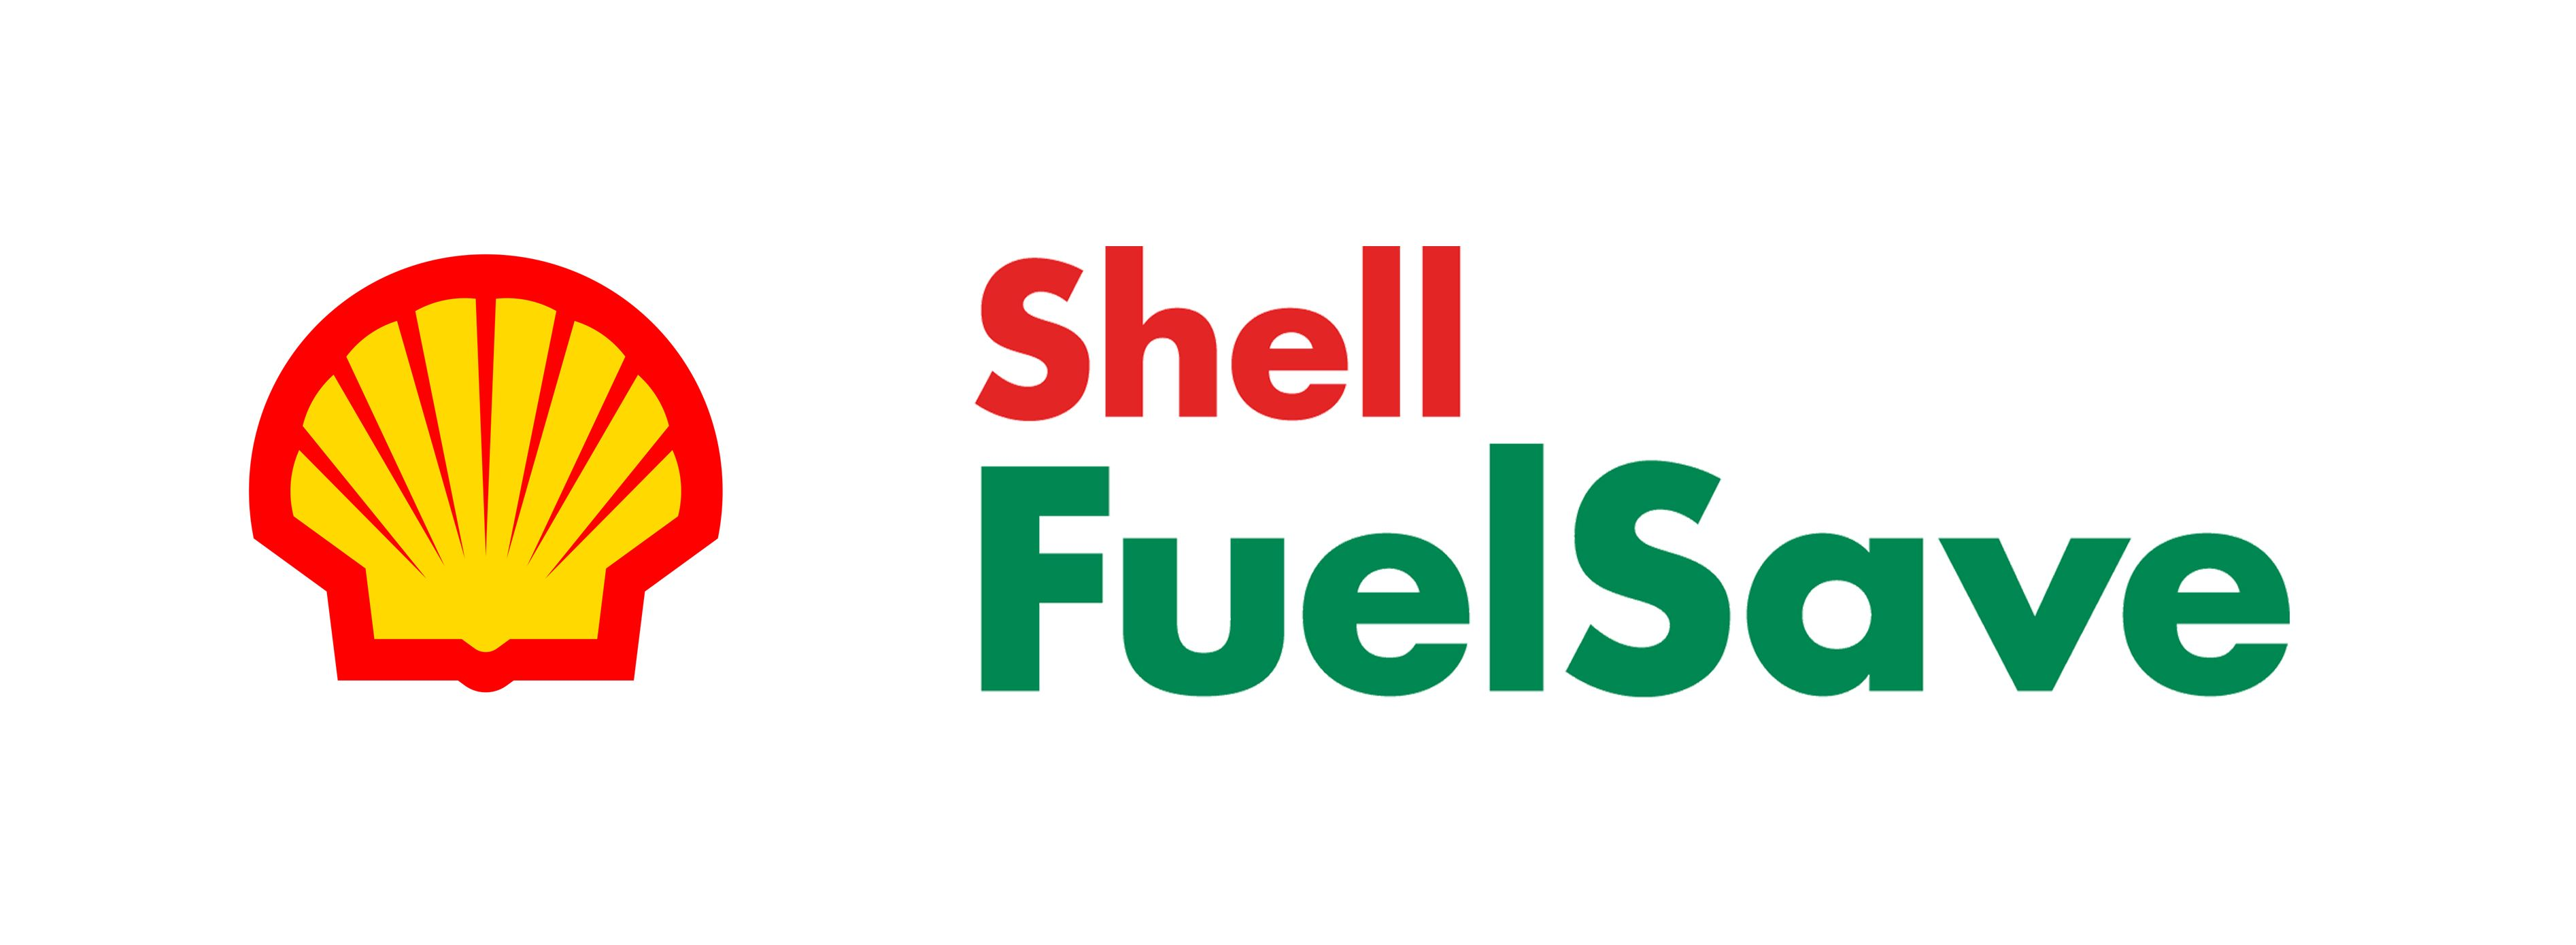 Shell FuelSave Diesel has been enriched with Shell's Efficiency Improver, it is shell's most advanced diesel fuel economy formula ever, Shell FuelSave Diesel has been specifically designed to save you money from your drivers, first fill and over the lifetime of your complete diesel fleet. Visit the website to find out more.